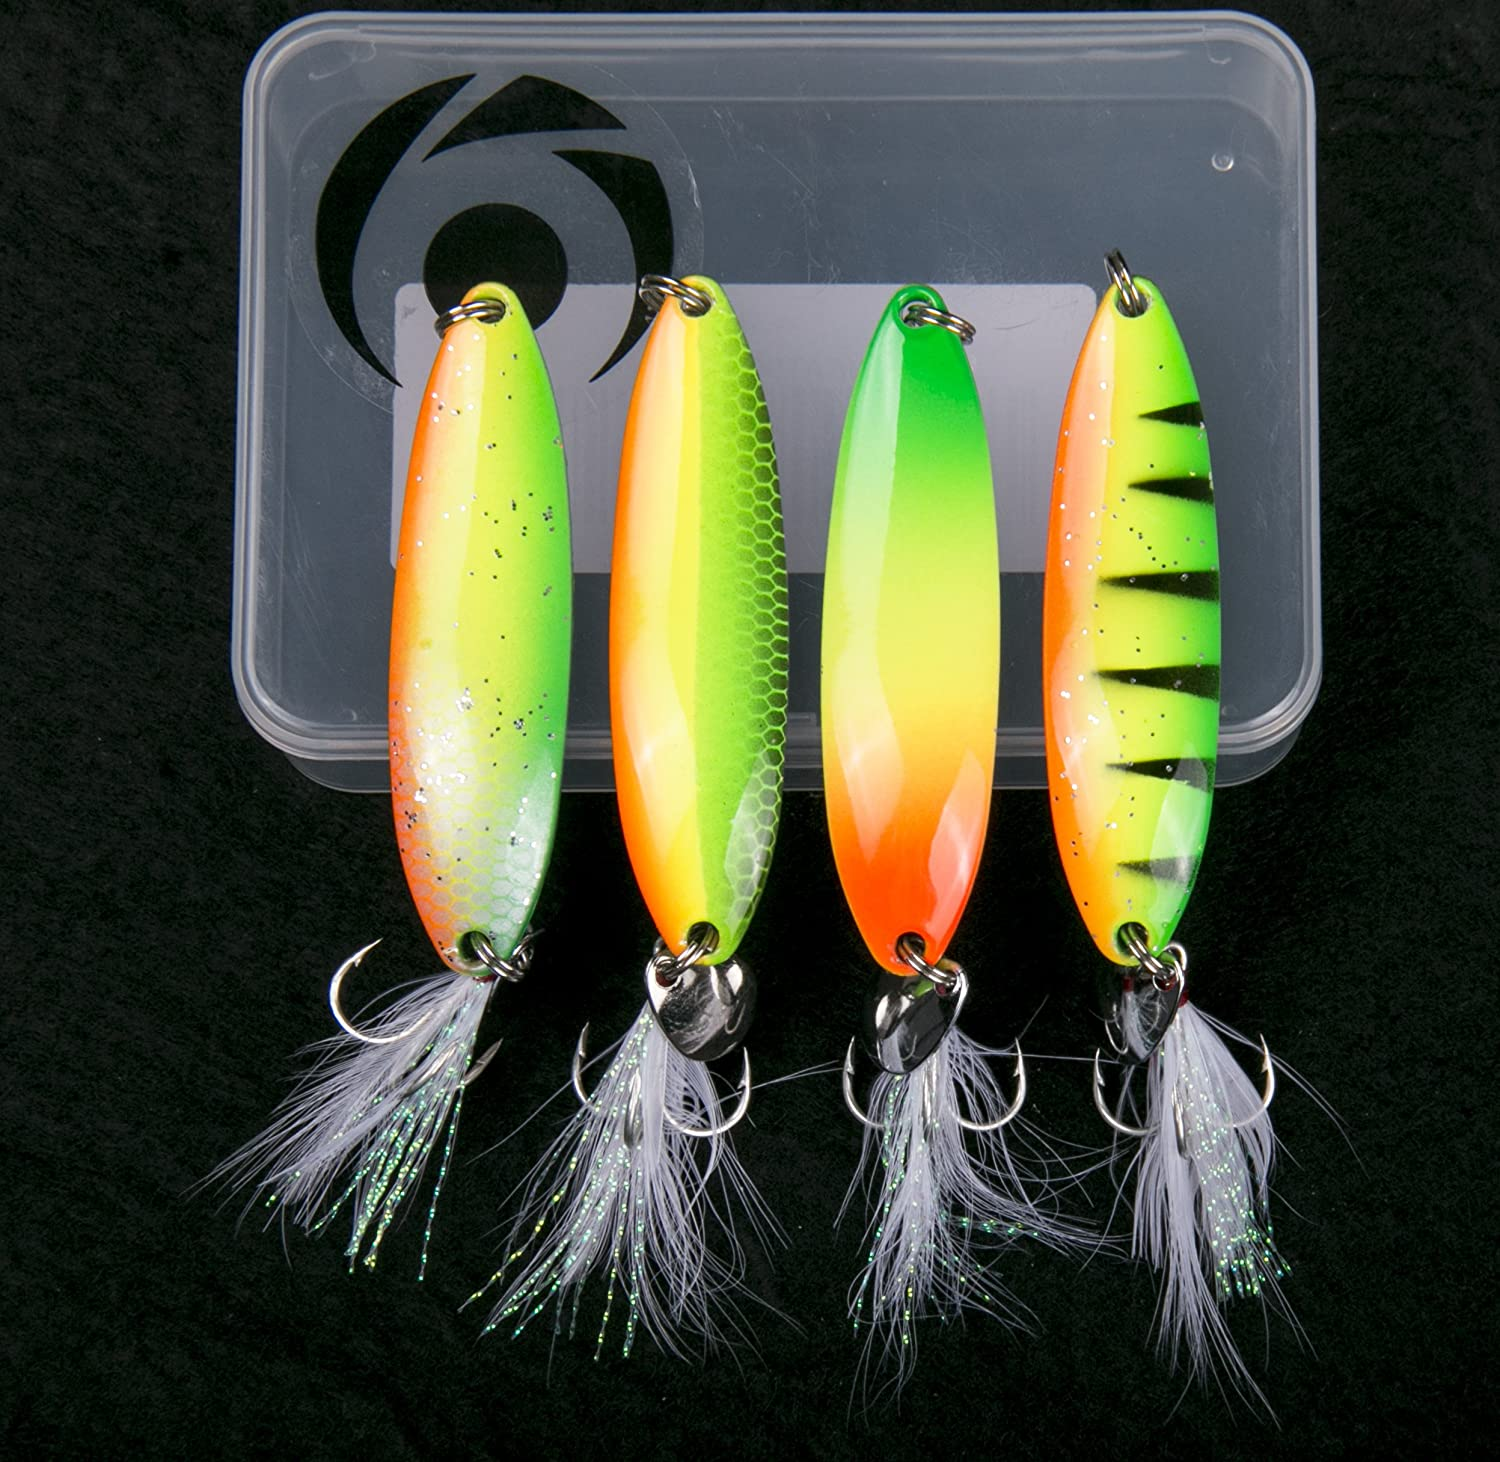 Rainbow 4 Packs Fishing Lures Metal Fishing Spoons Saltwater Hard Spinners Casting Sinking Lures for Northern Pike Salmon Walleye and Bass Fishing